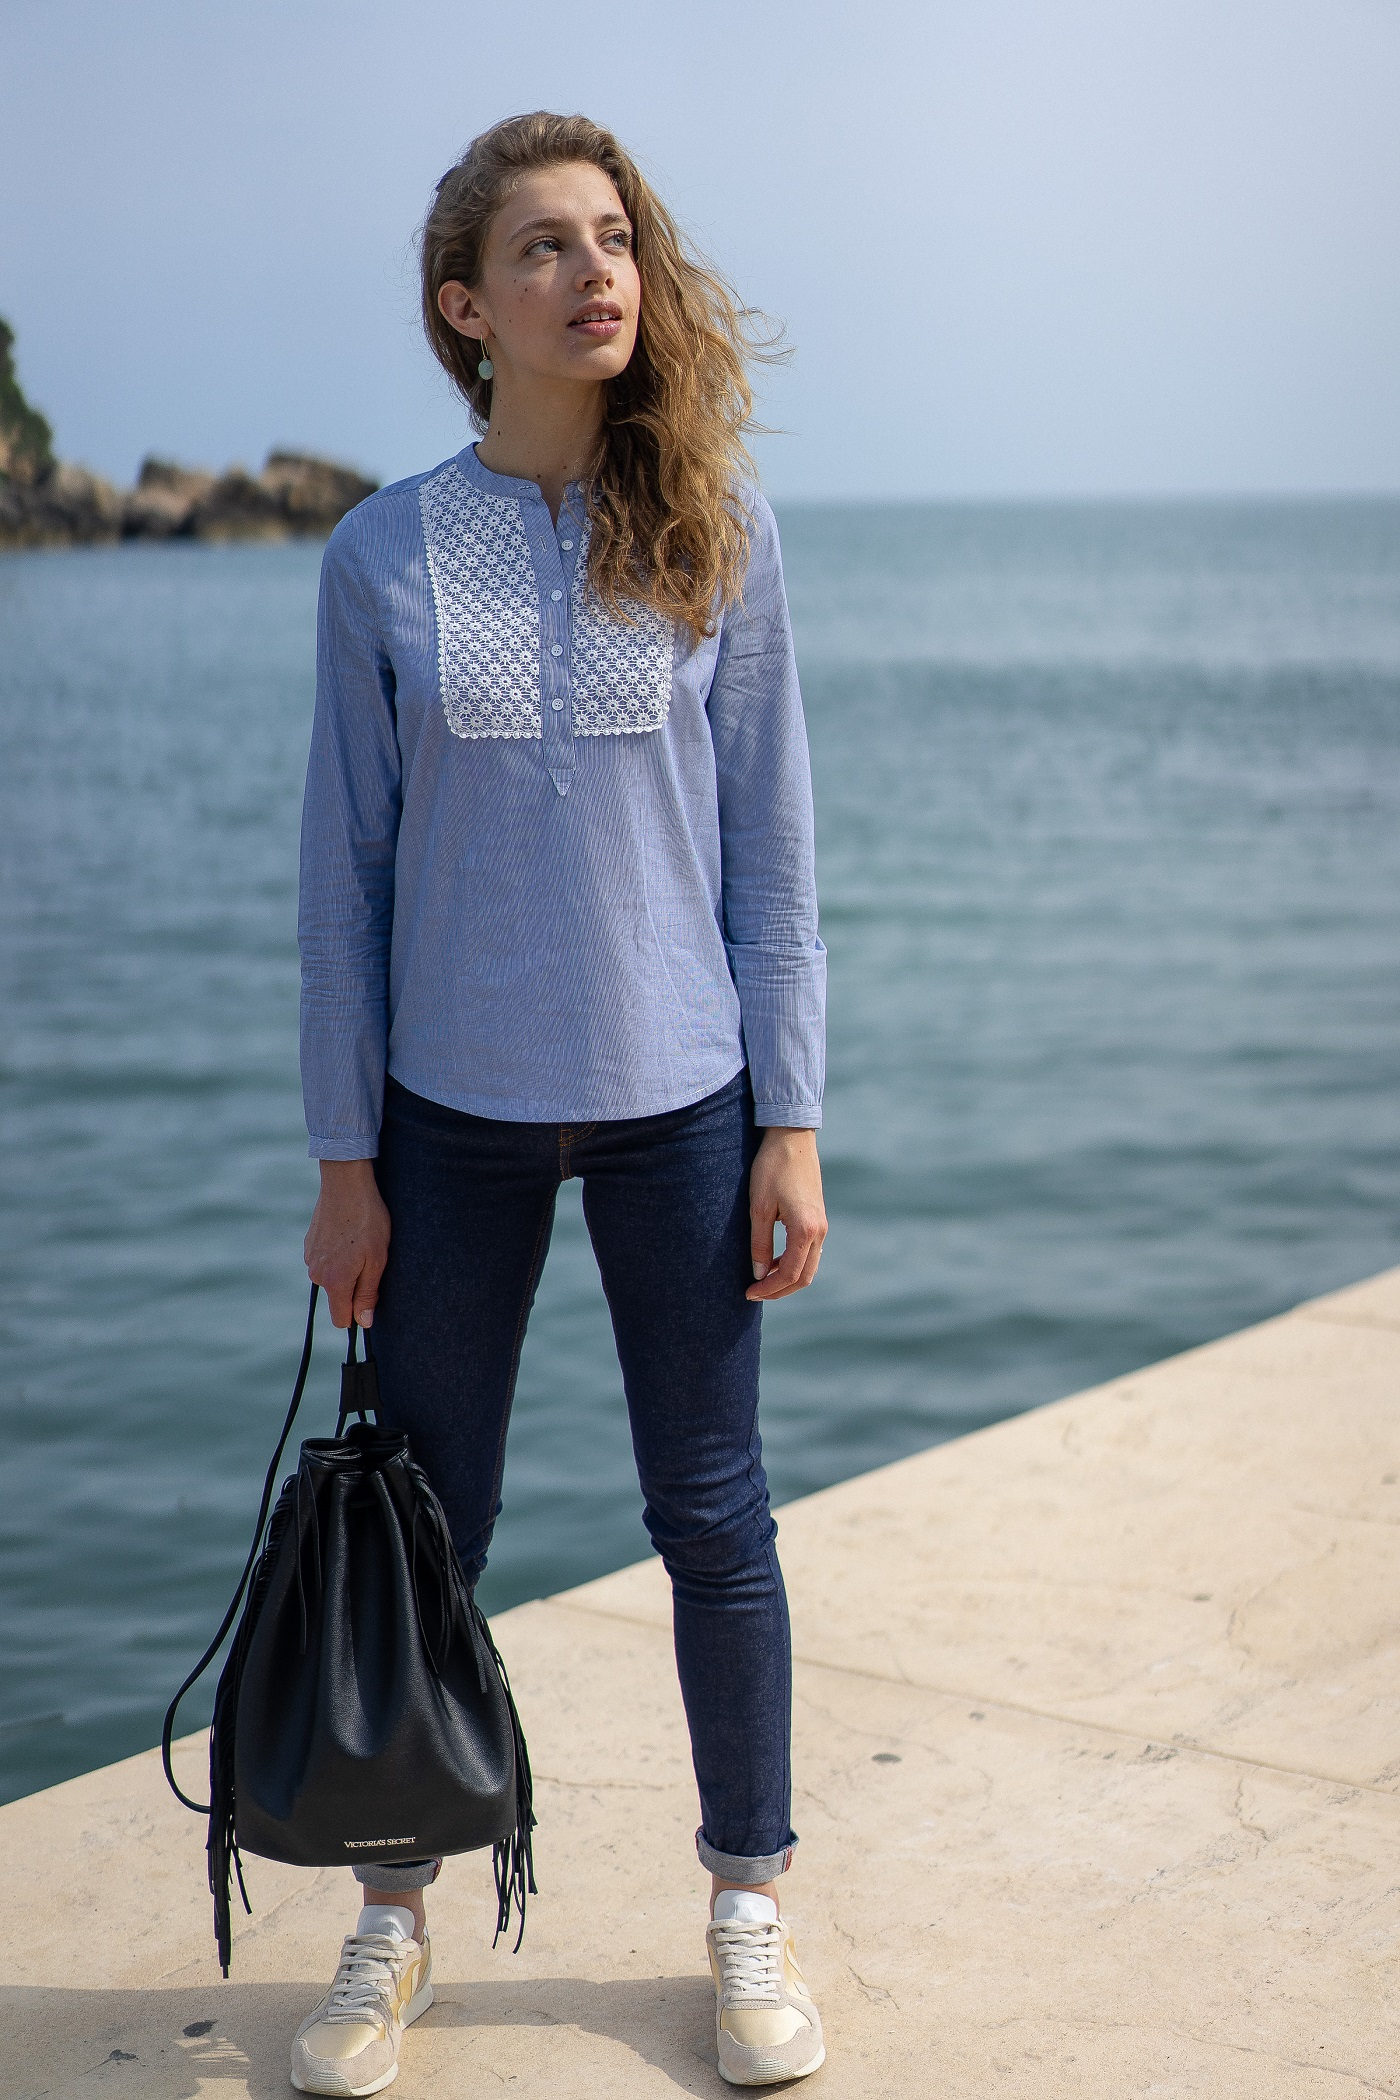 jean-brut-1083-ecoresponsable-ecofriendly-mesideesnaturelles-slowfashion